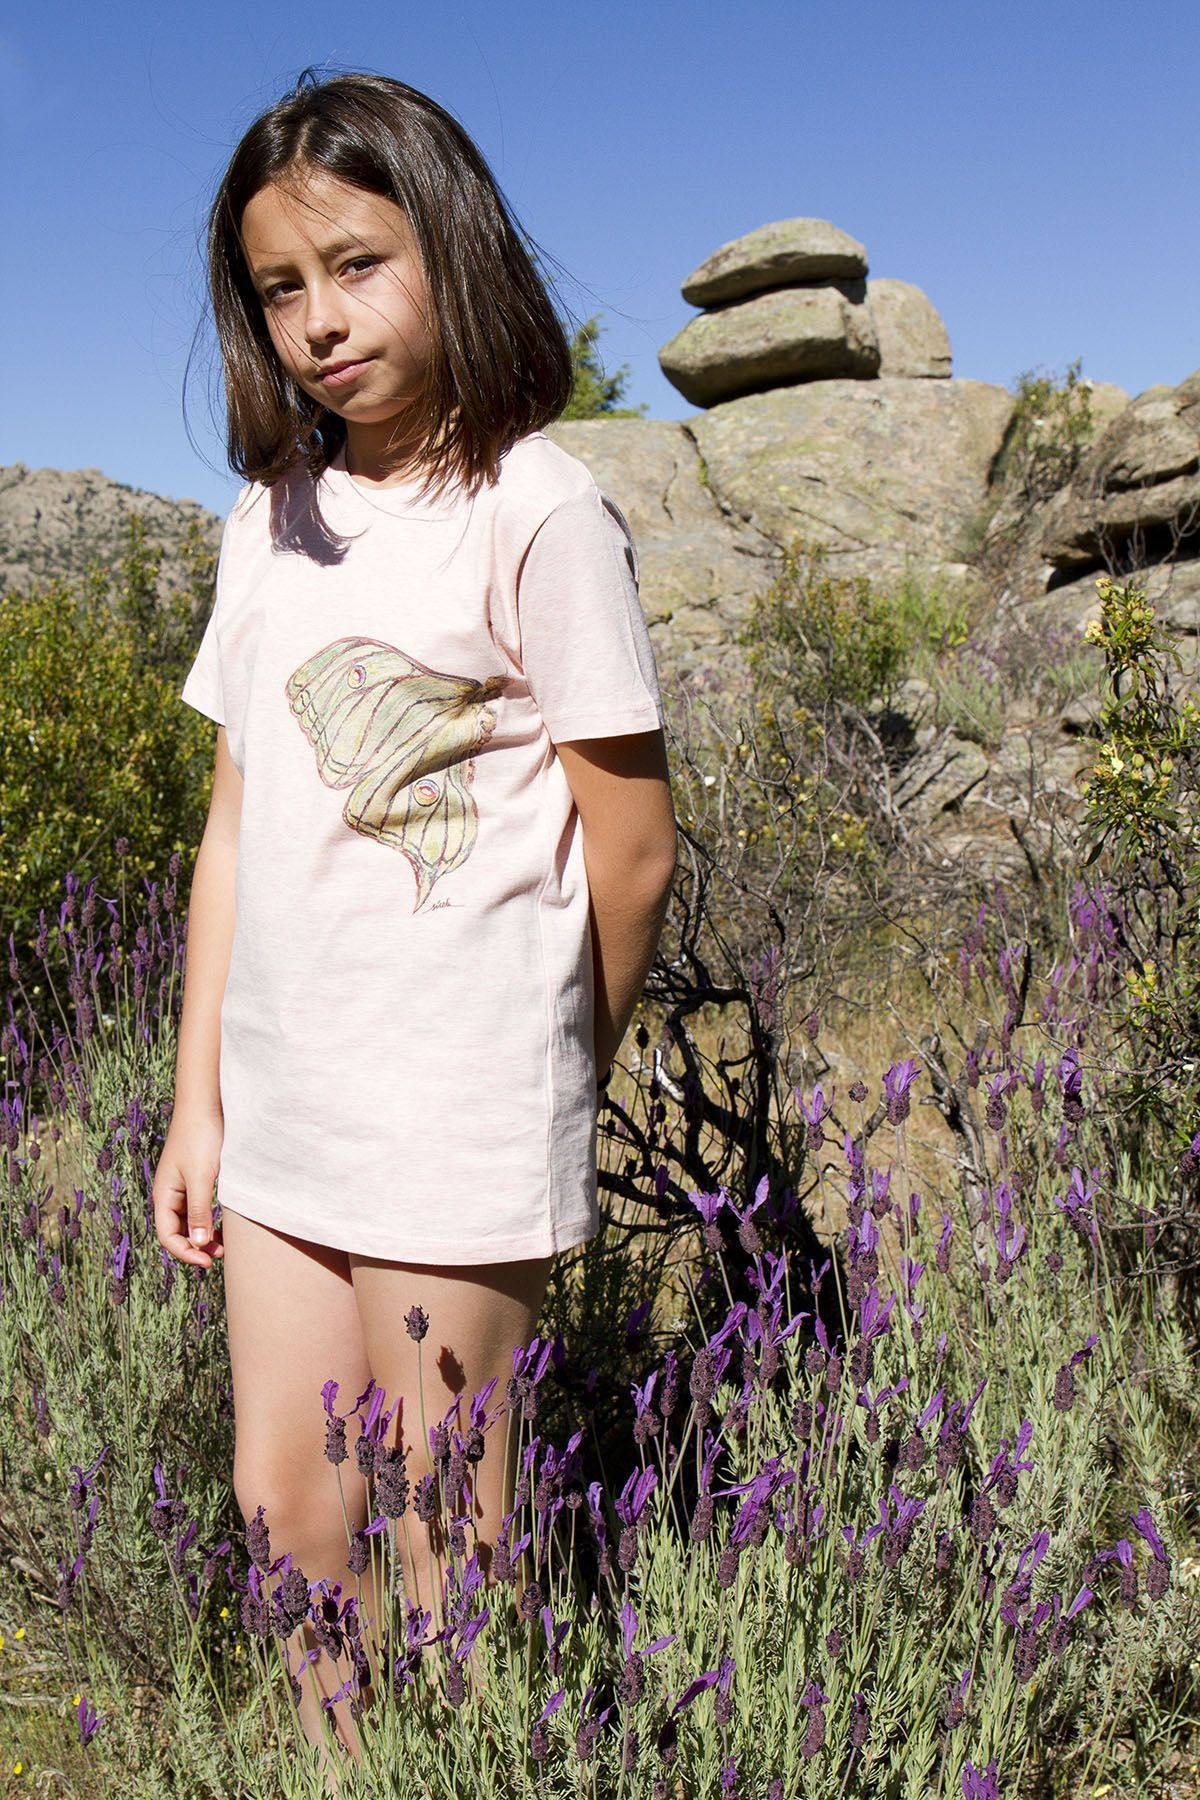 sirem wild-coleccion nature lover-moda sostenible-mariposa